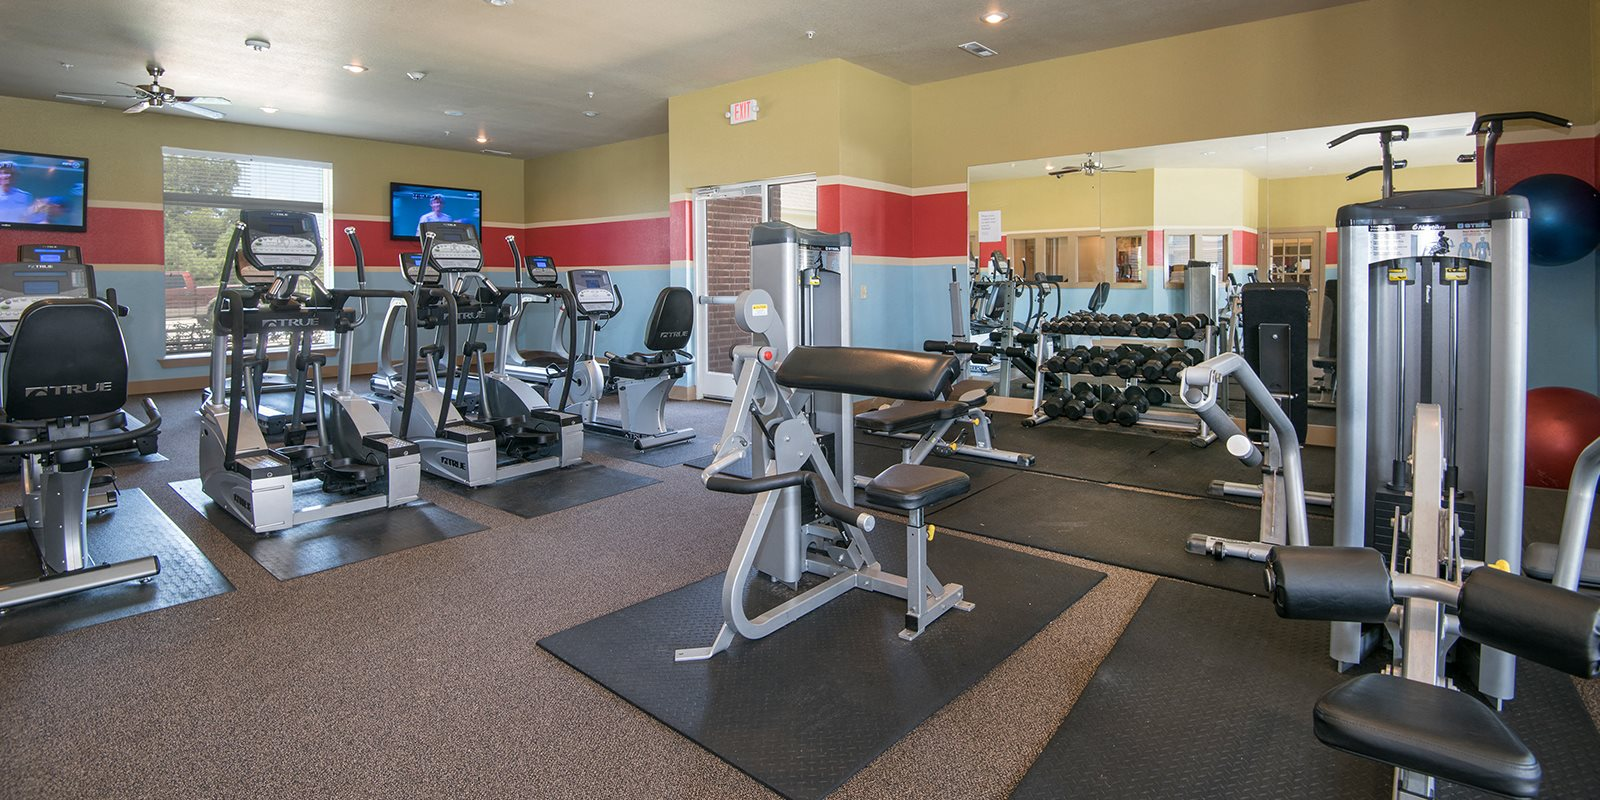 Cardio Equipment at The Greens on Aspen, Broken Arrow,Oklahoma